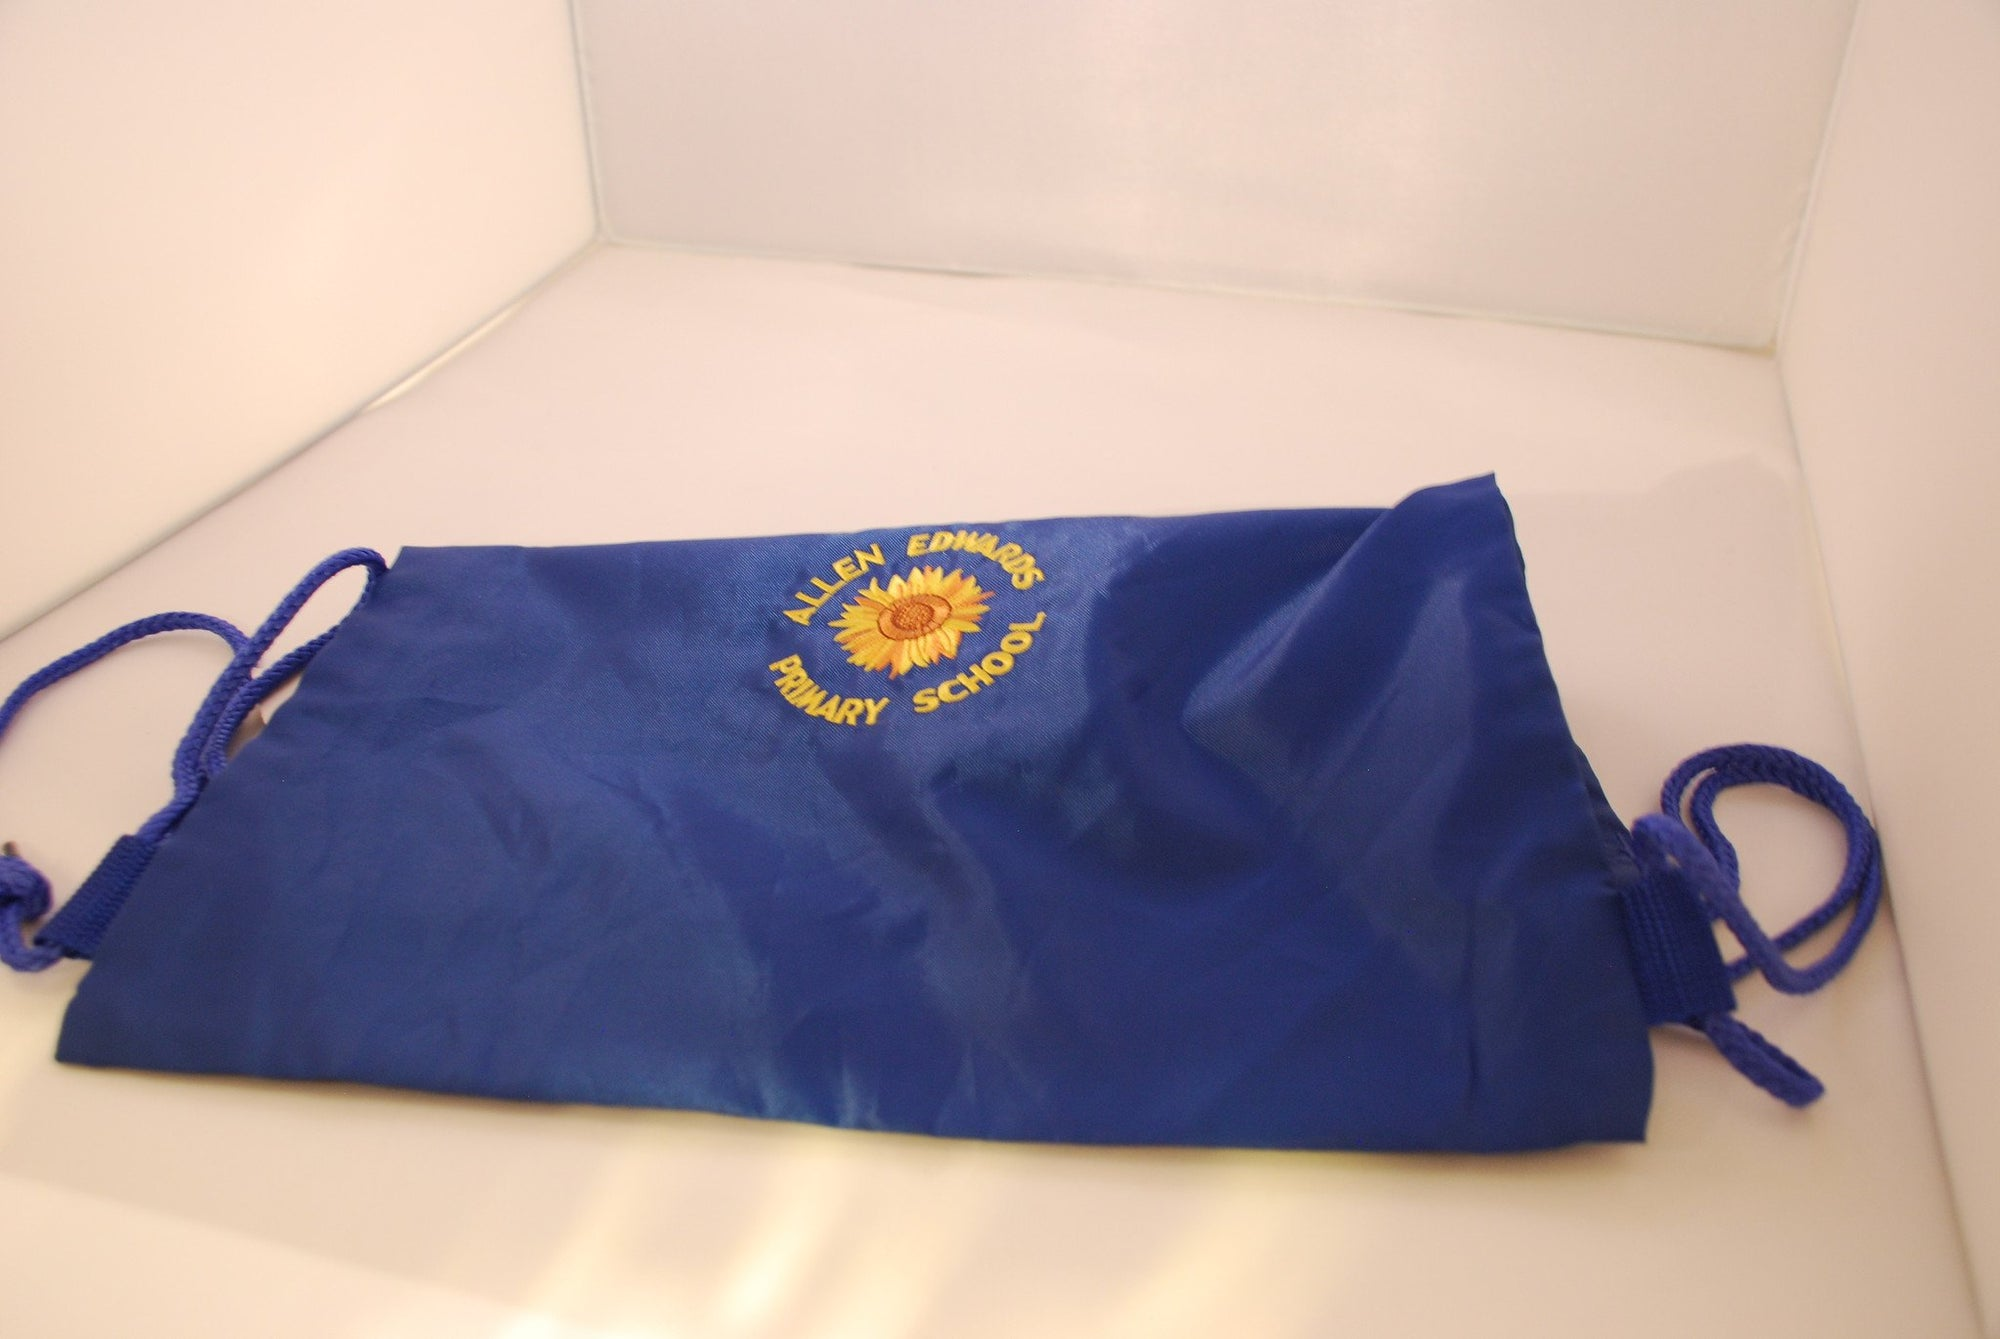 Allen Edwards P.E. Bag